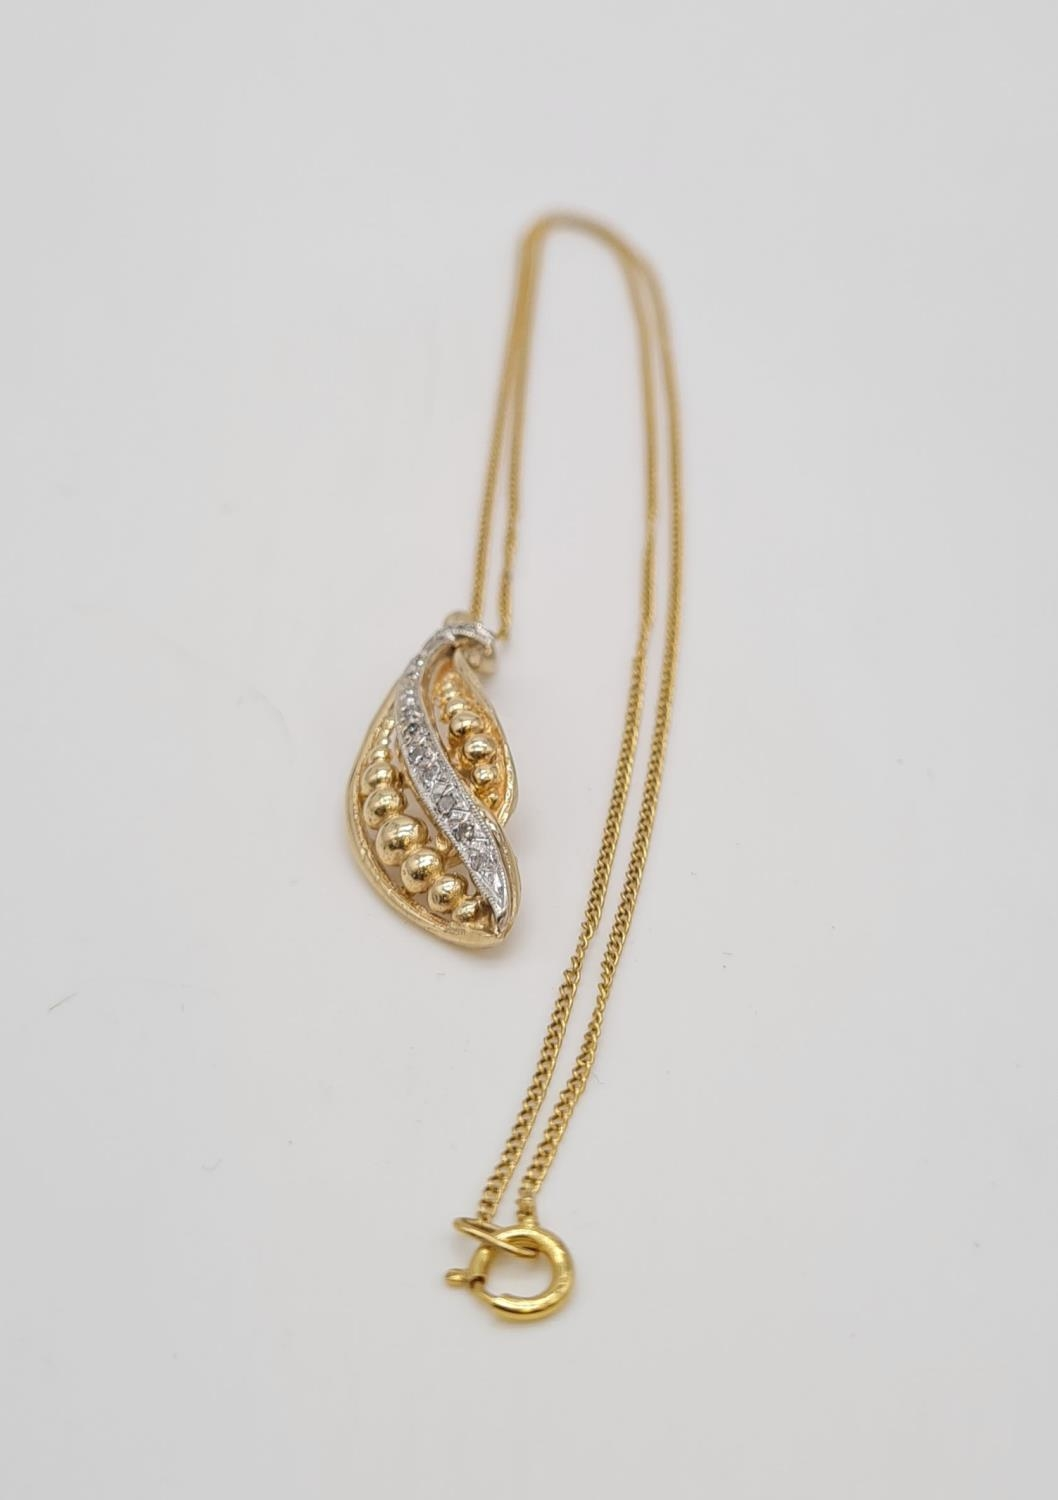 18ct gold diamond set pendant on chain, weight 3.69g and 40cm long, pendant 3 x 1cm - Image 8 of 9